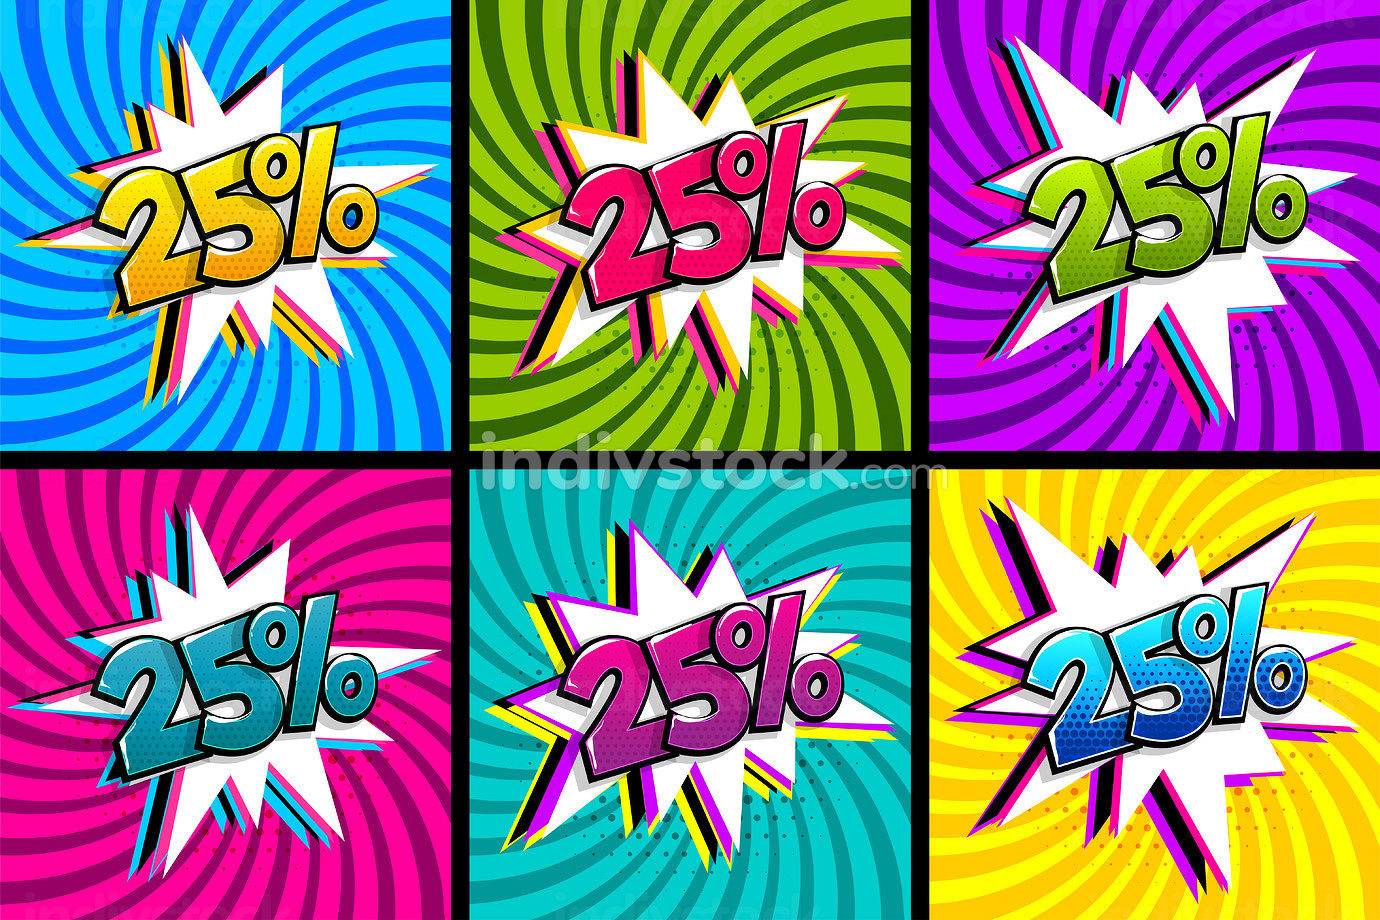 Comic text 25 percent sale set discount. Colored speech bubble on radial background. Comics book explosion wow boom offer collection. Halftone radial vintage. Promo sale twenty five percent poster